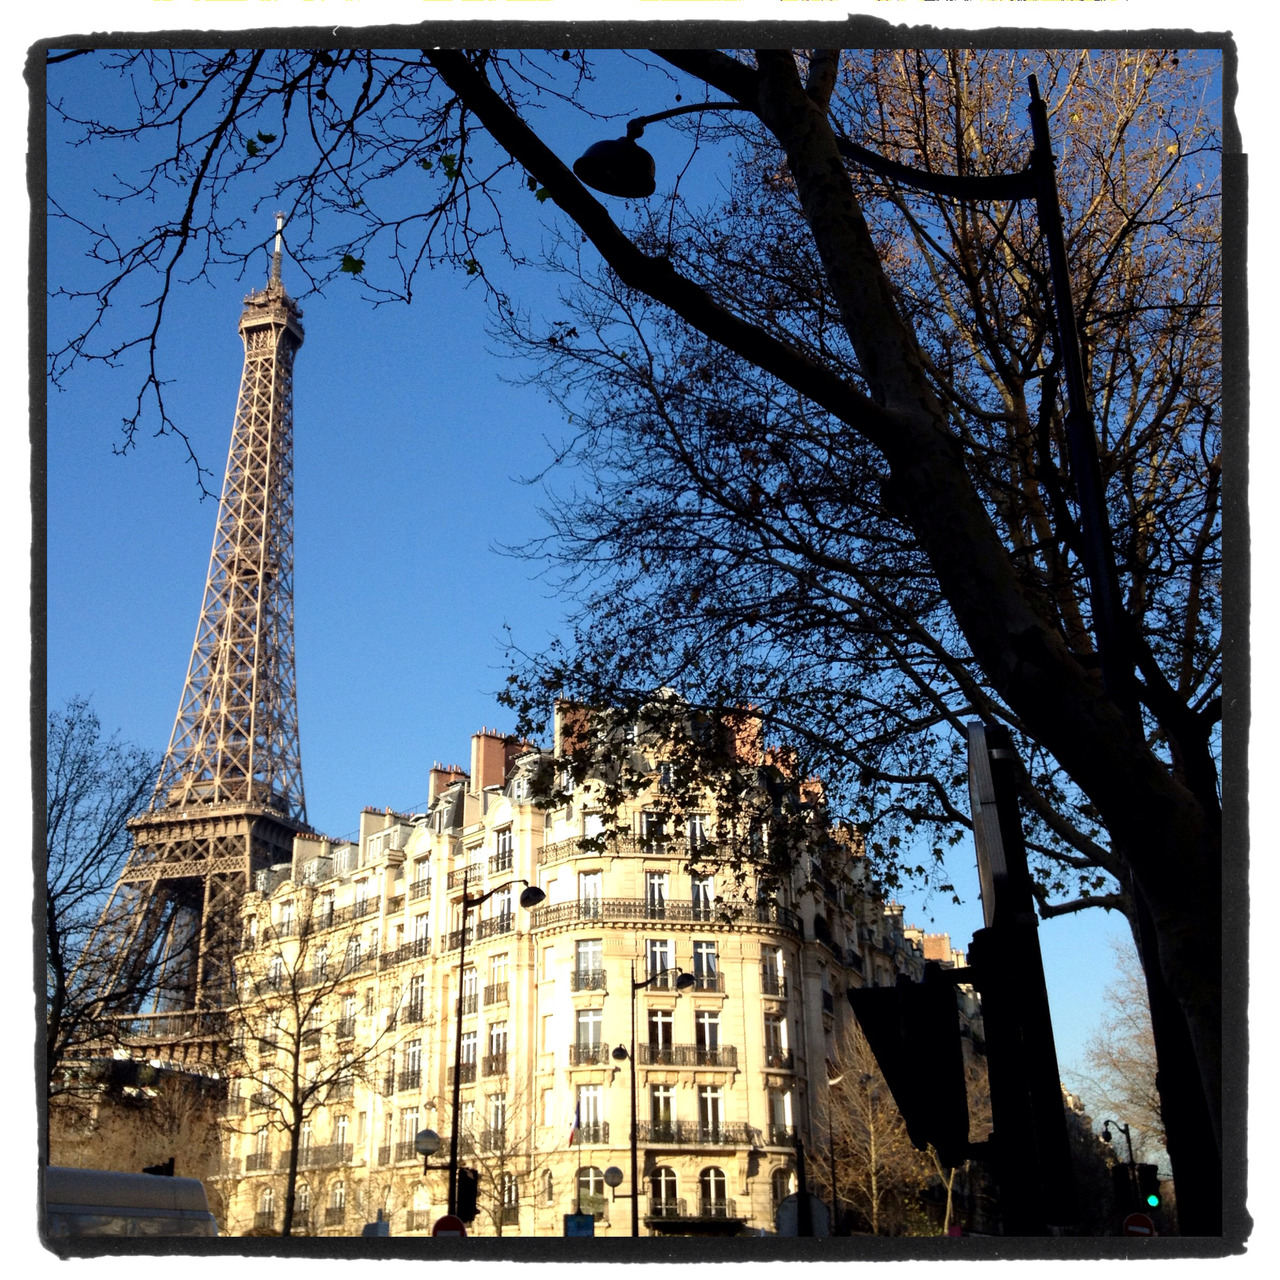 A crisp, cold morning this morning in Paris with the Eiffel Tower against a cloudless blue sky.  — Anon